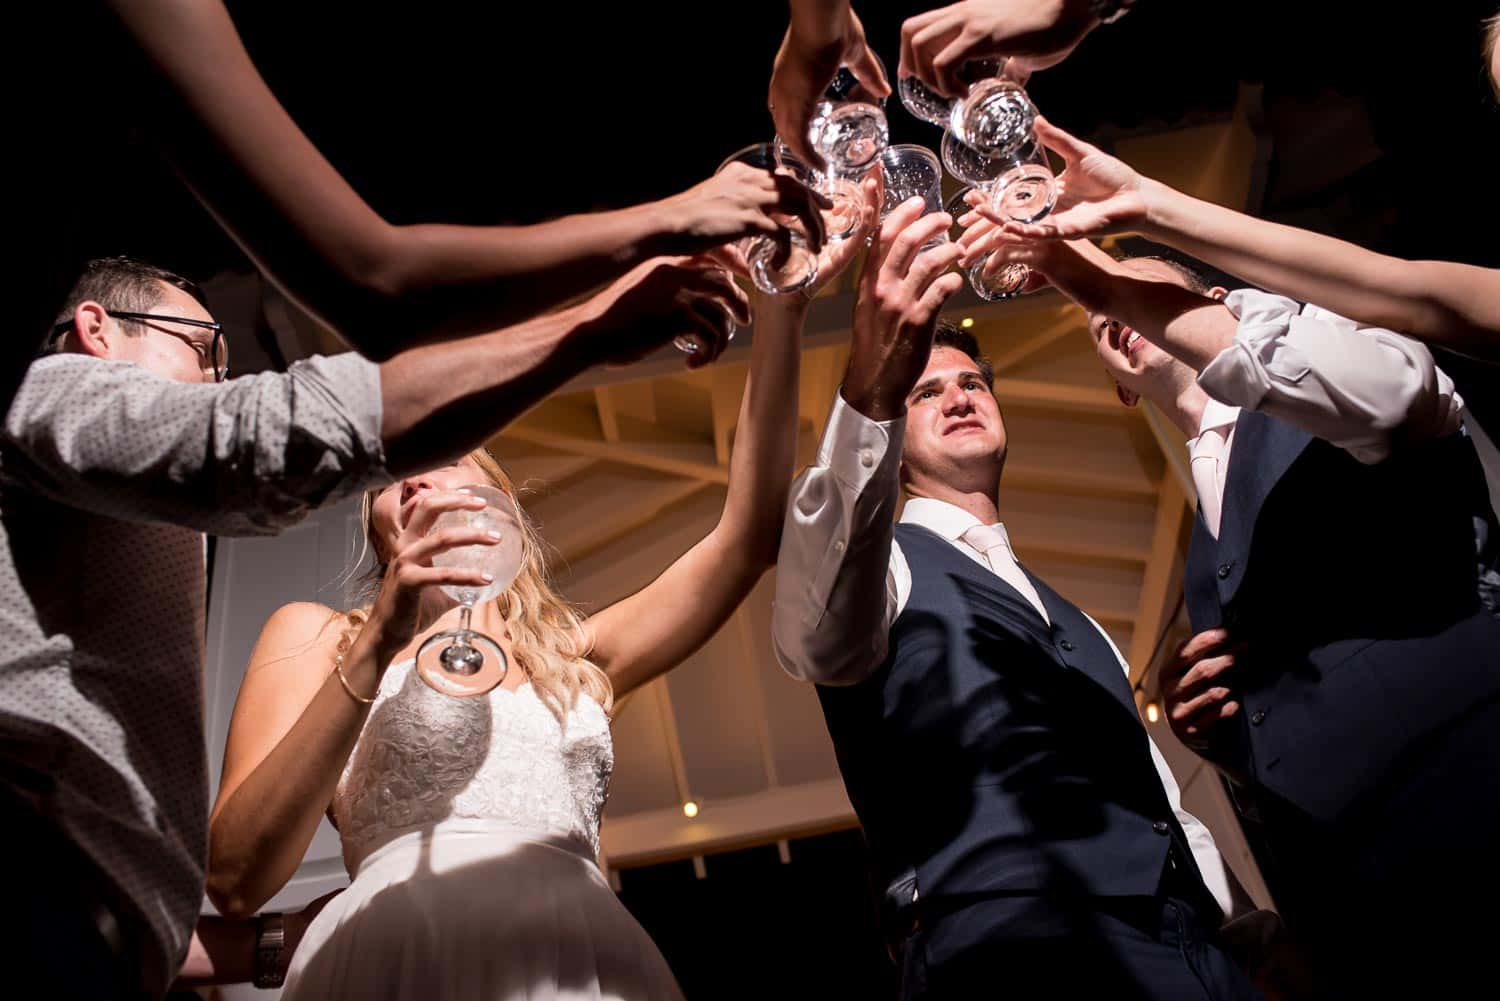 Sharing a cheers during the wedding reception